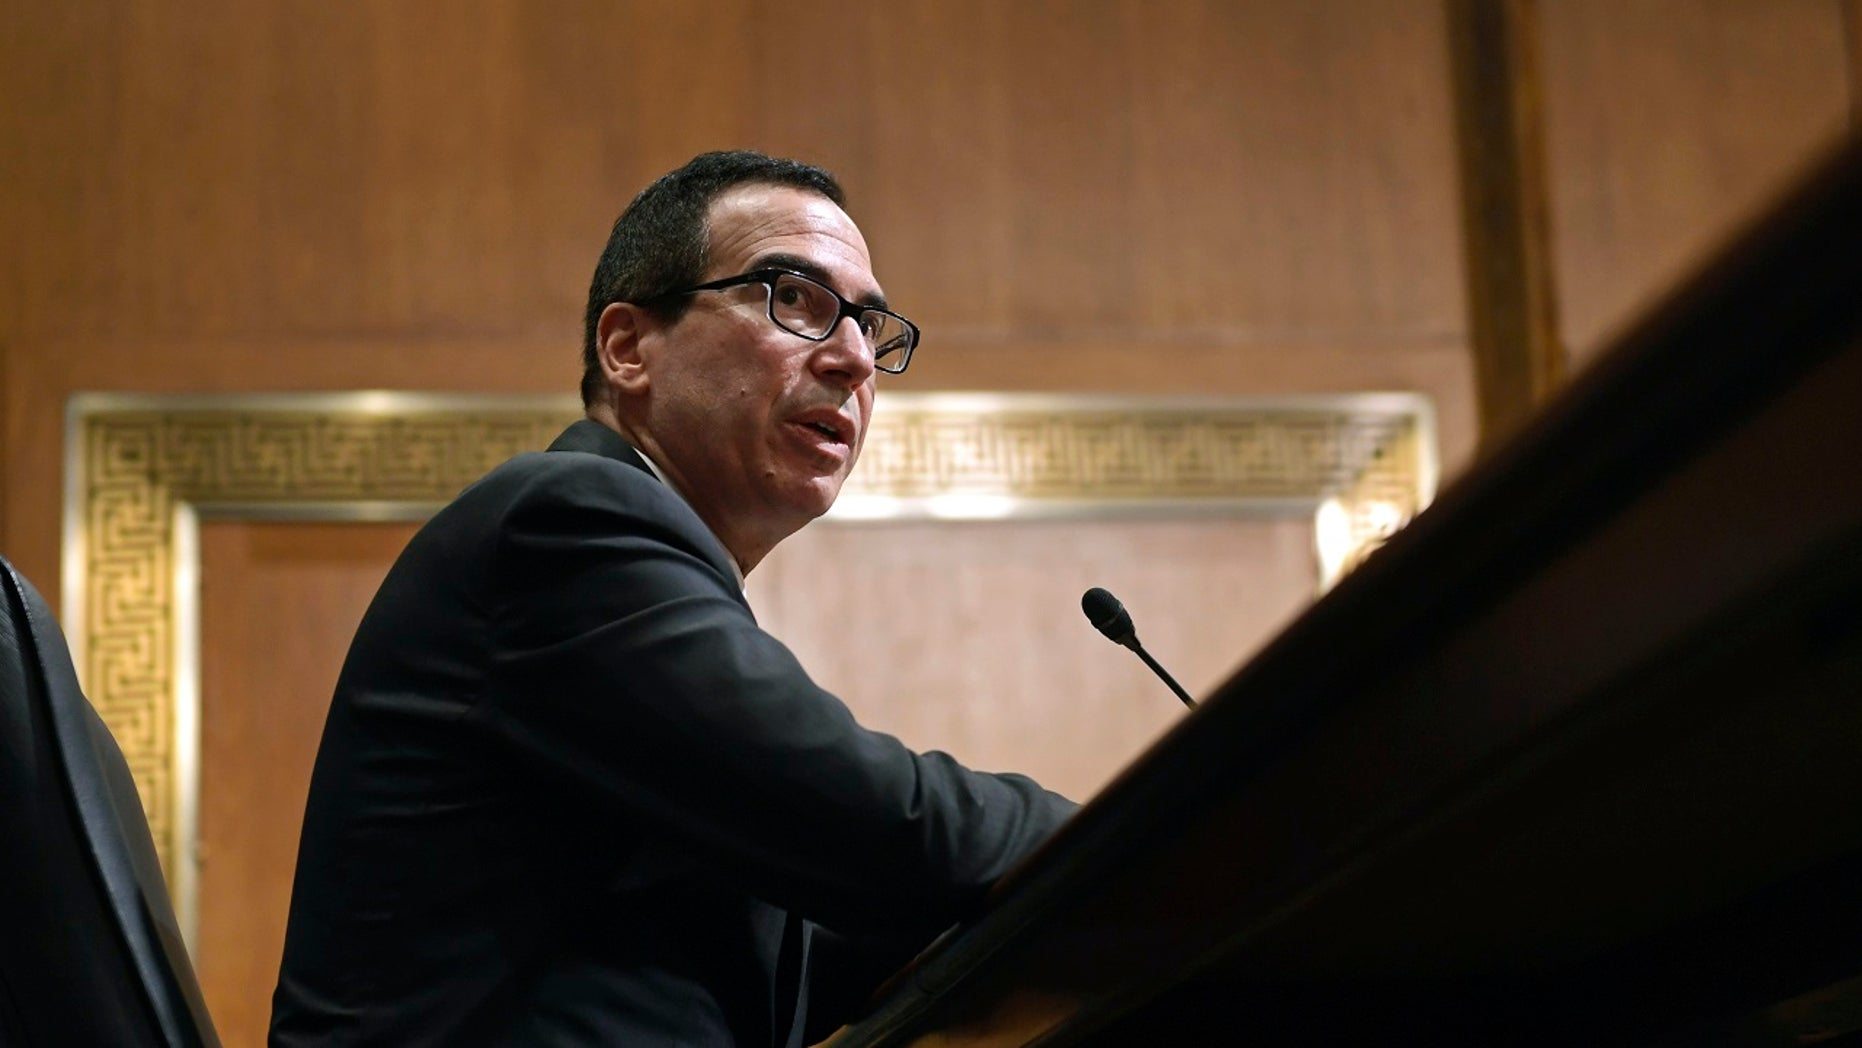 Treasury Secretary Steven Mnuchin's trips on military aircraft last year cost taxpayers roughly $1 million, according to documents obtained by Citizens for Responsibility and Ethics in Washington (CREW).